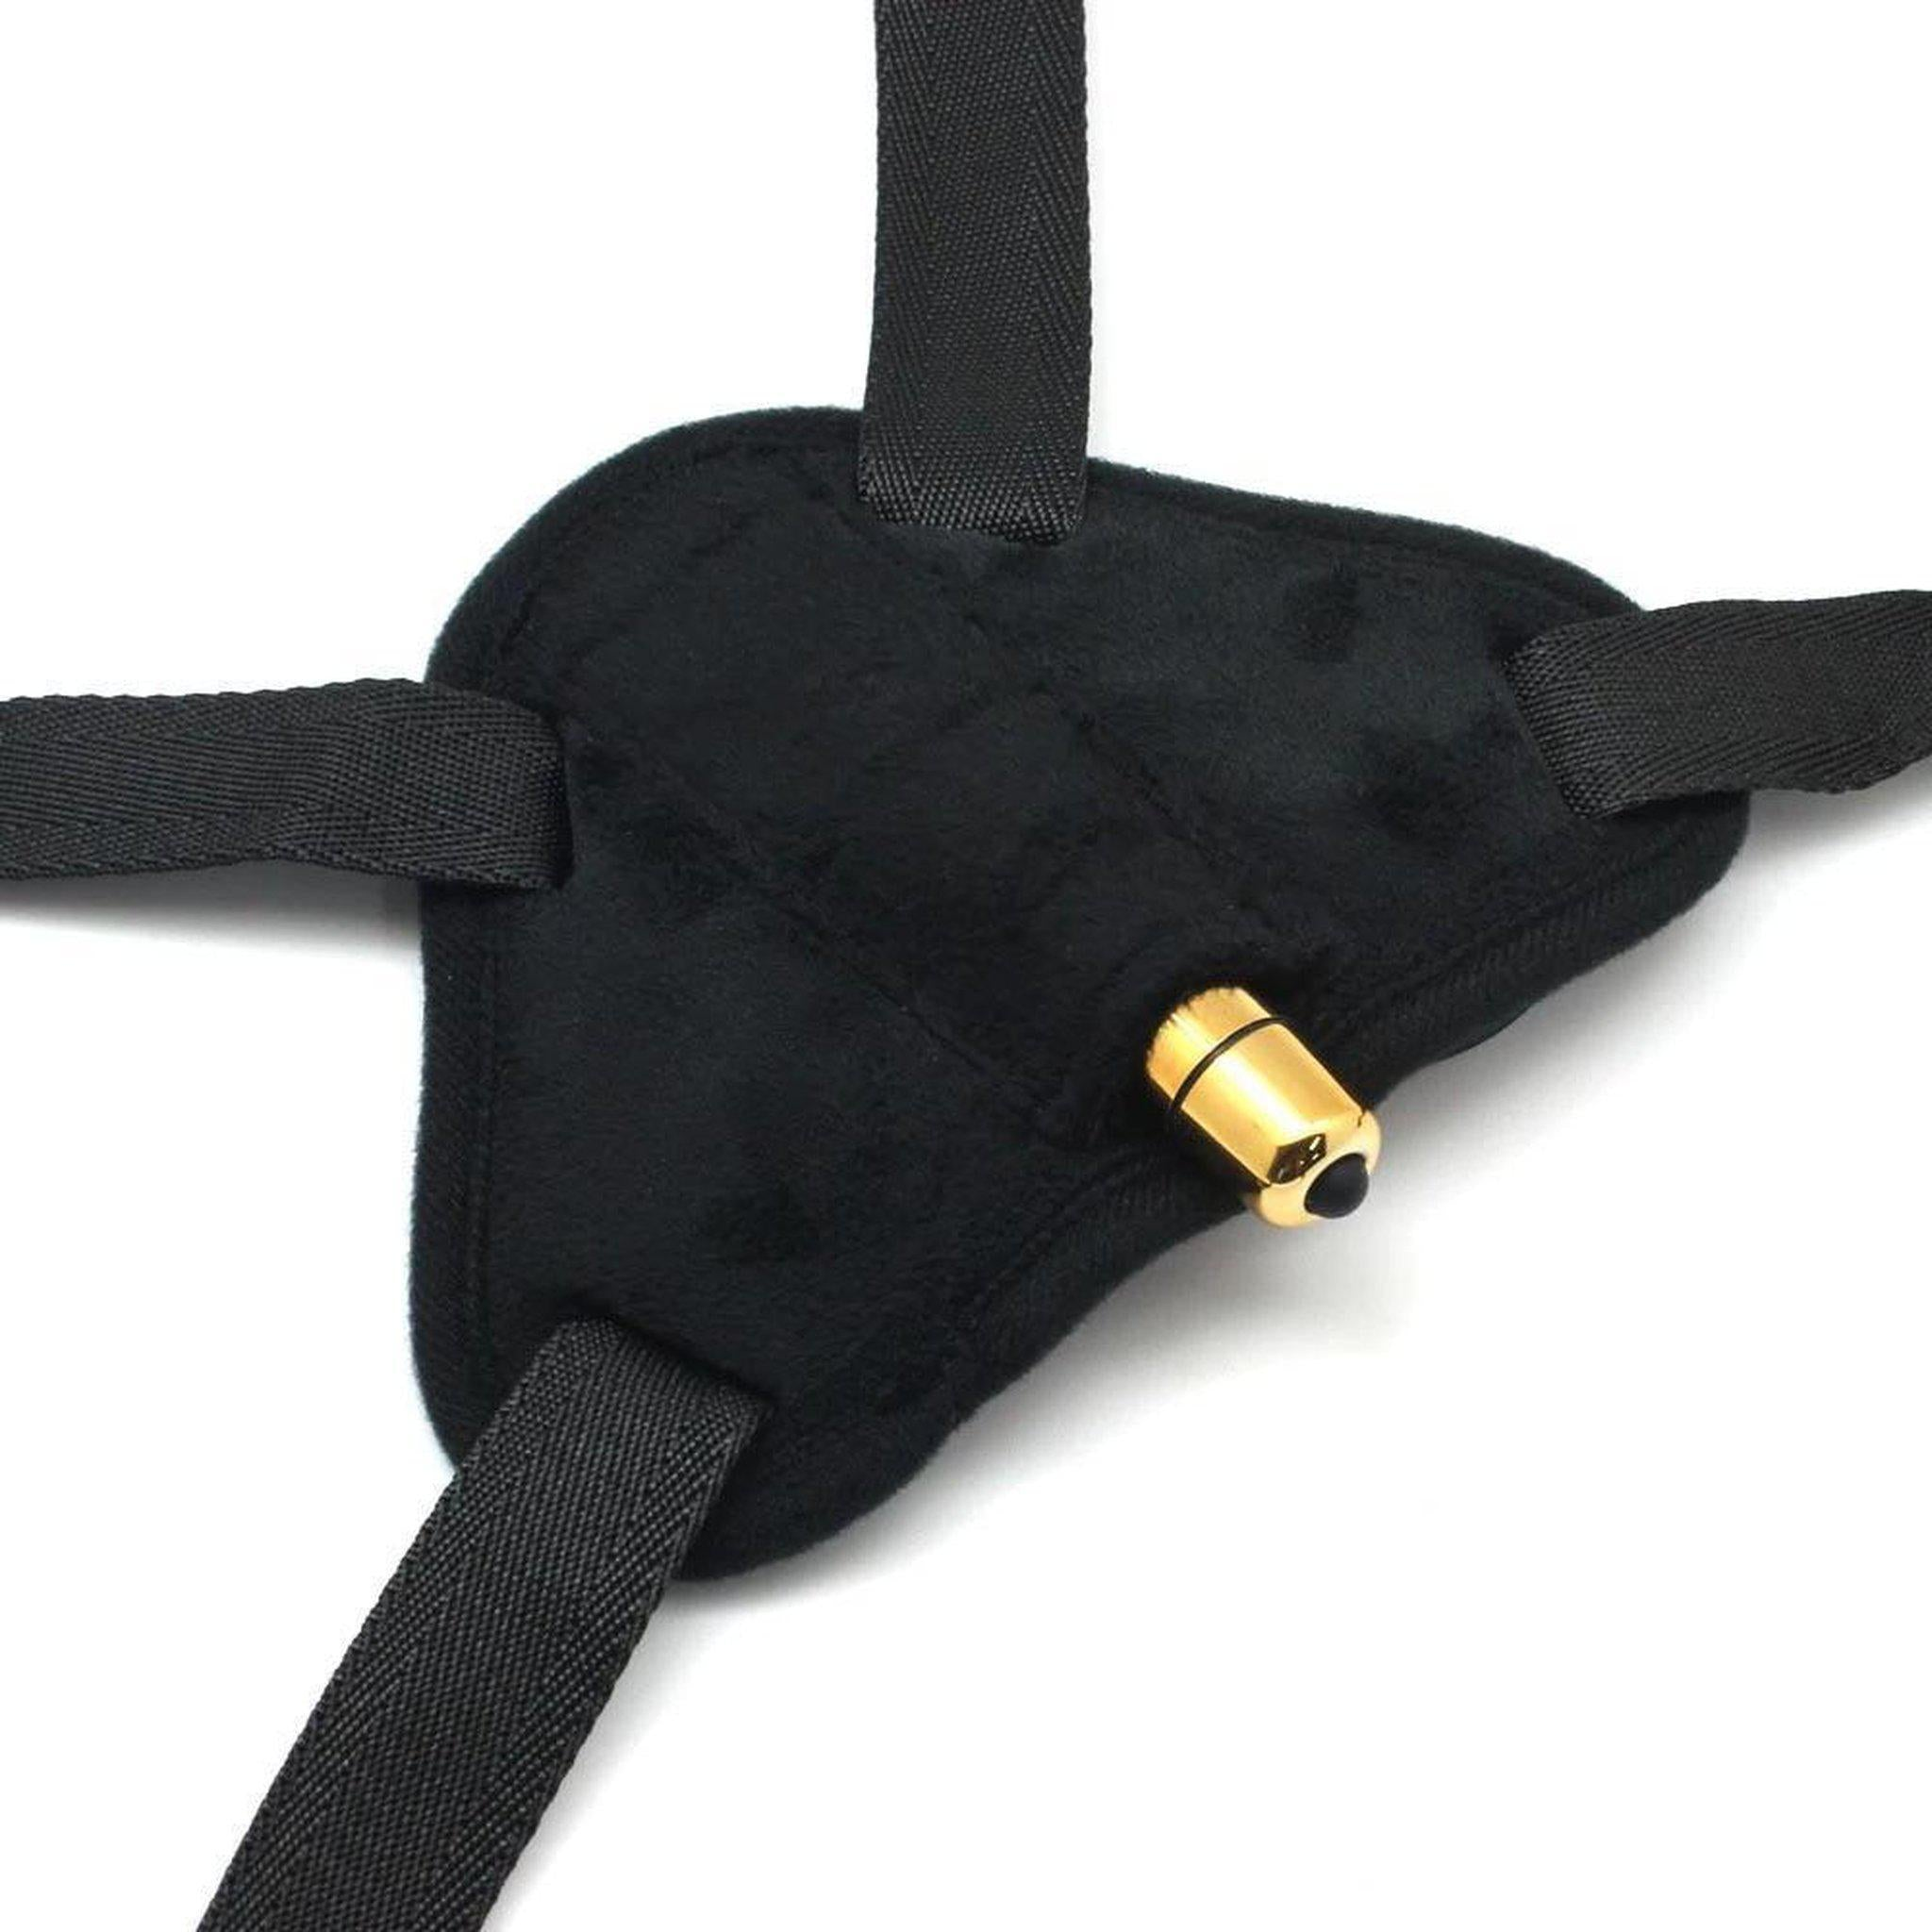 Plus Size Adjustable Strap On Dildo Harness with Bullet Vibrator-Good Girl xox-International-buy-bdsm-bondage-gear-tools-toys-online-good-girl-xox